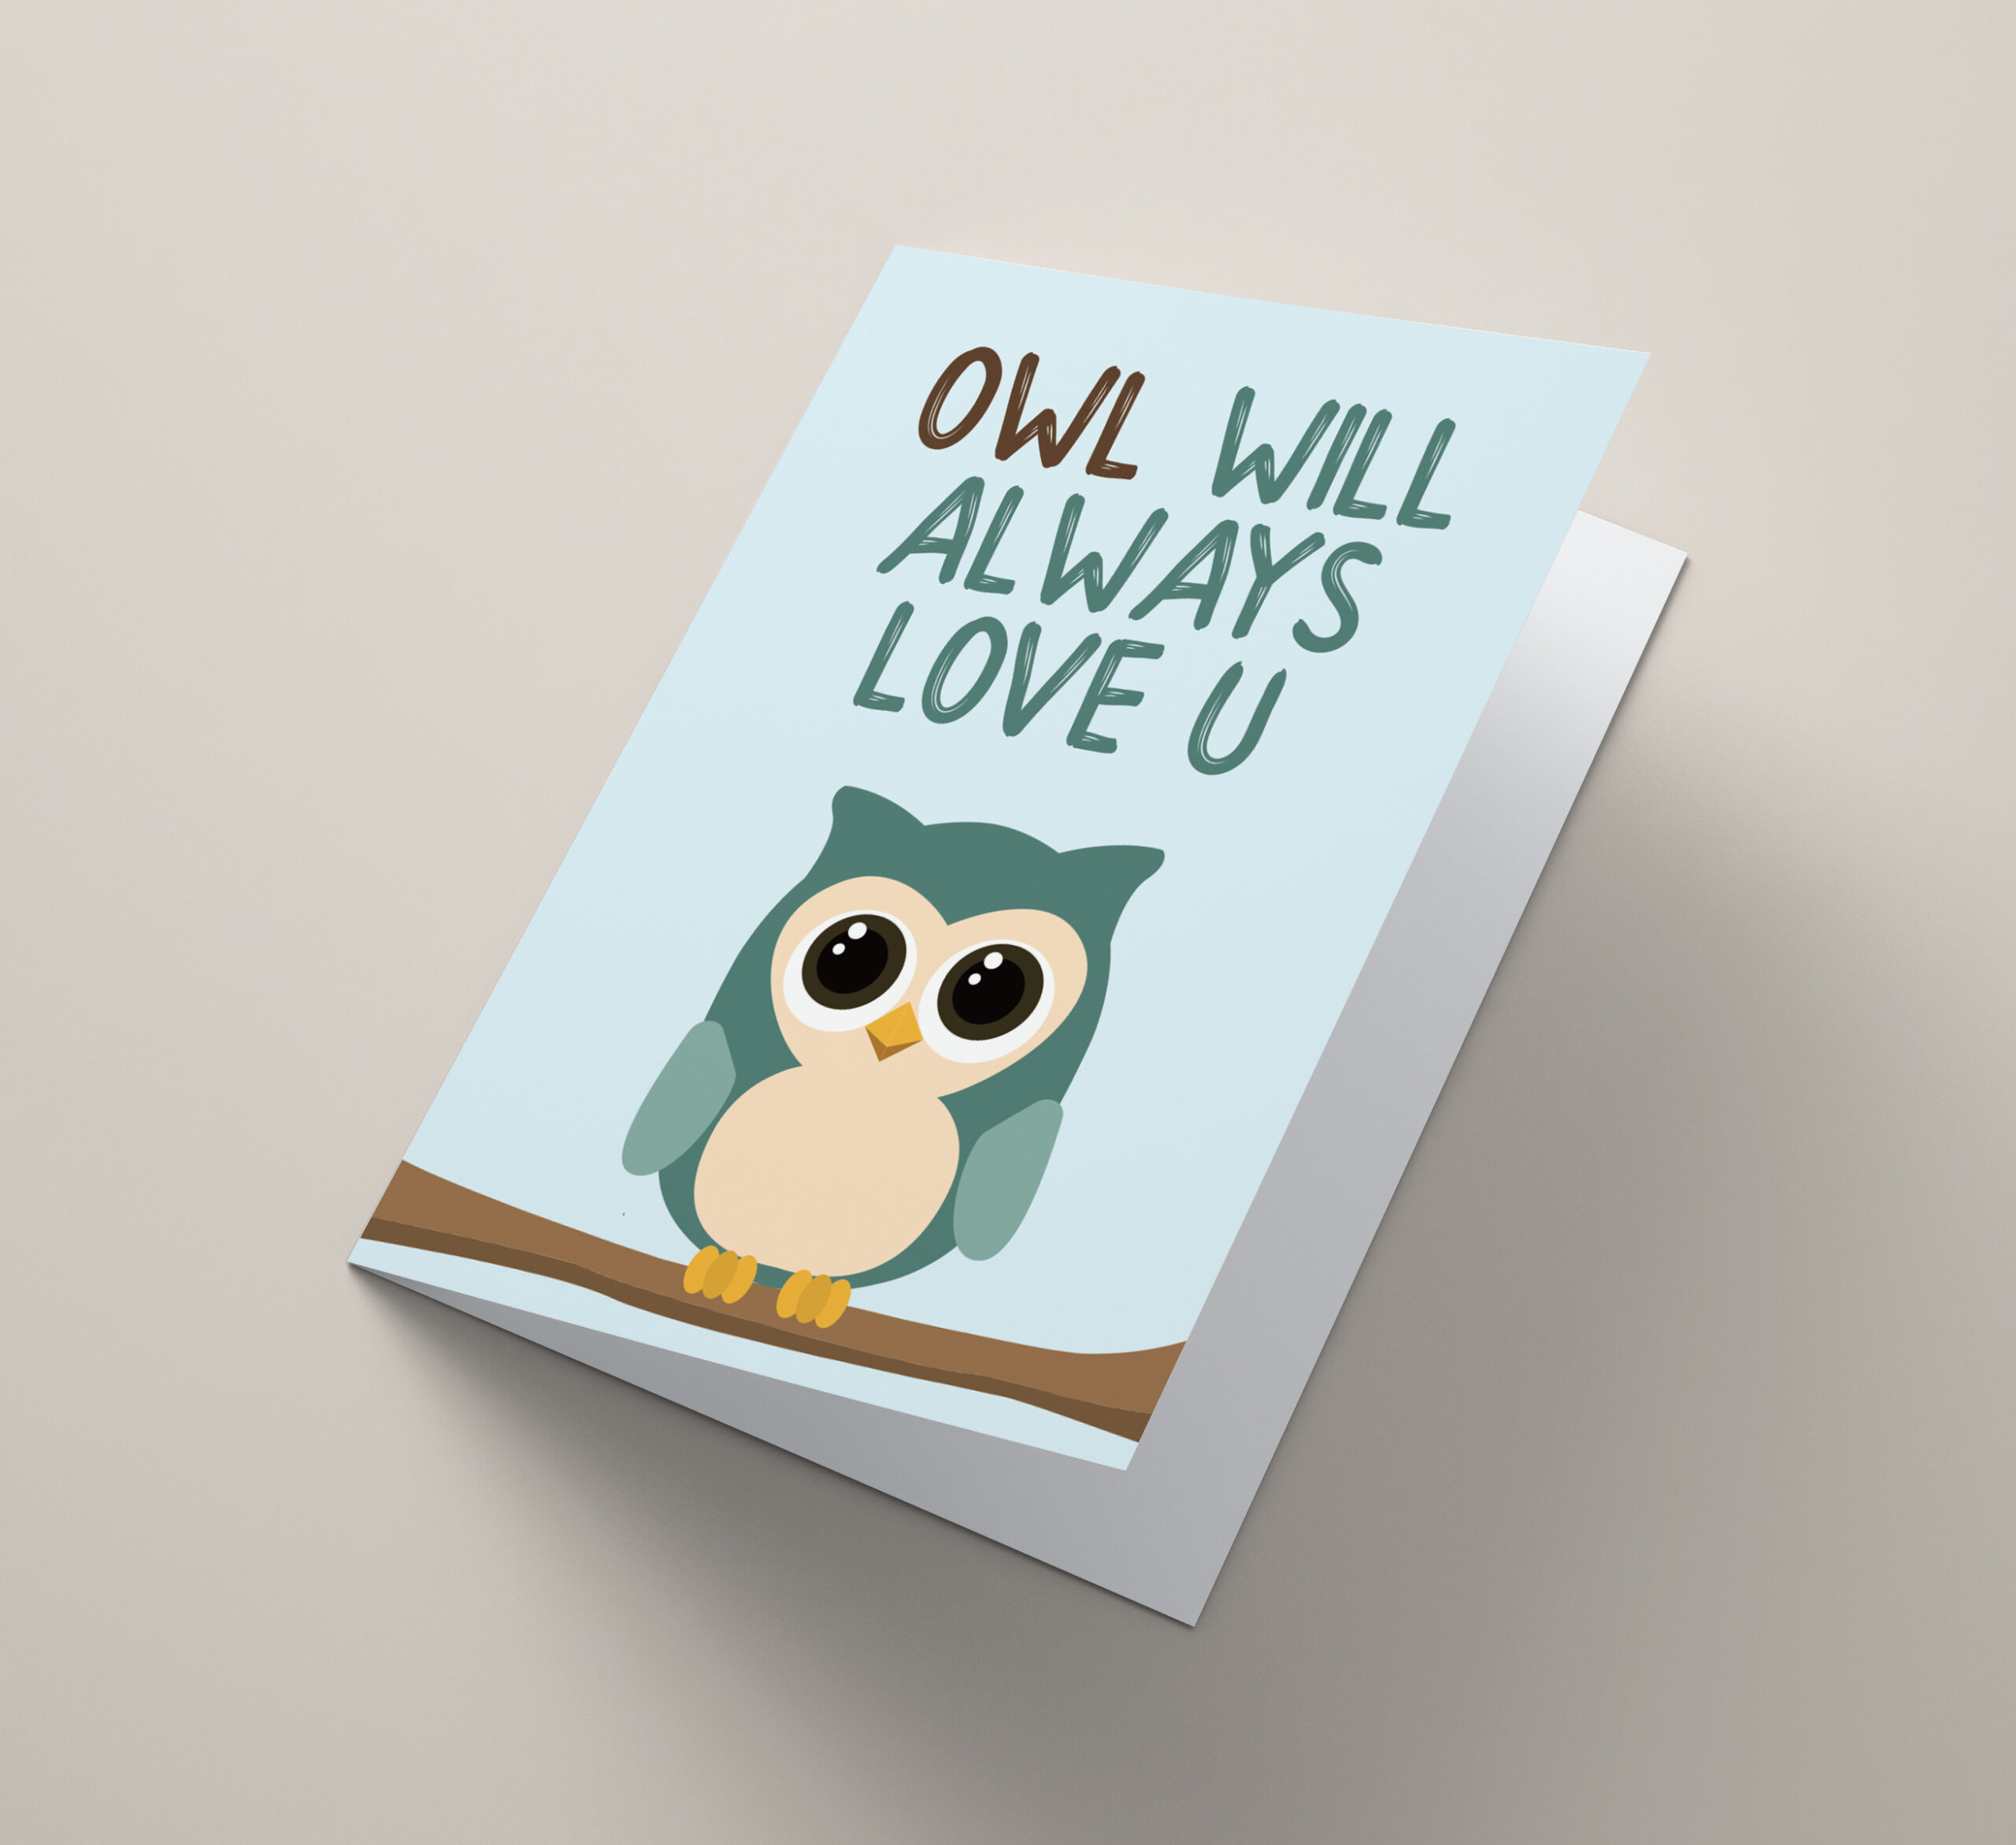 Owl Will Always Love U